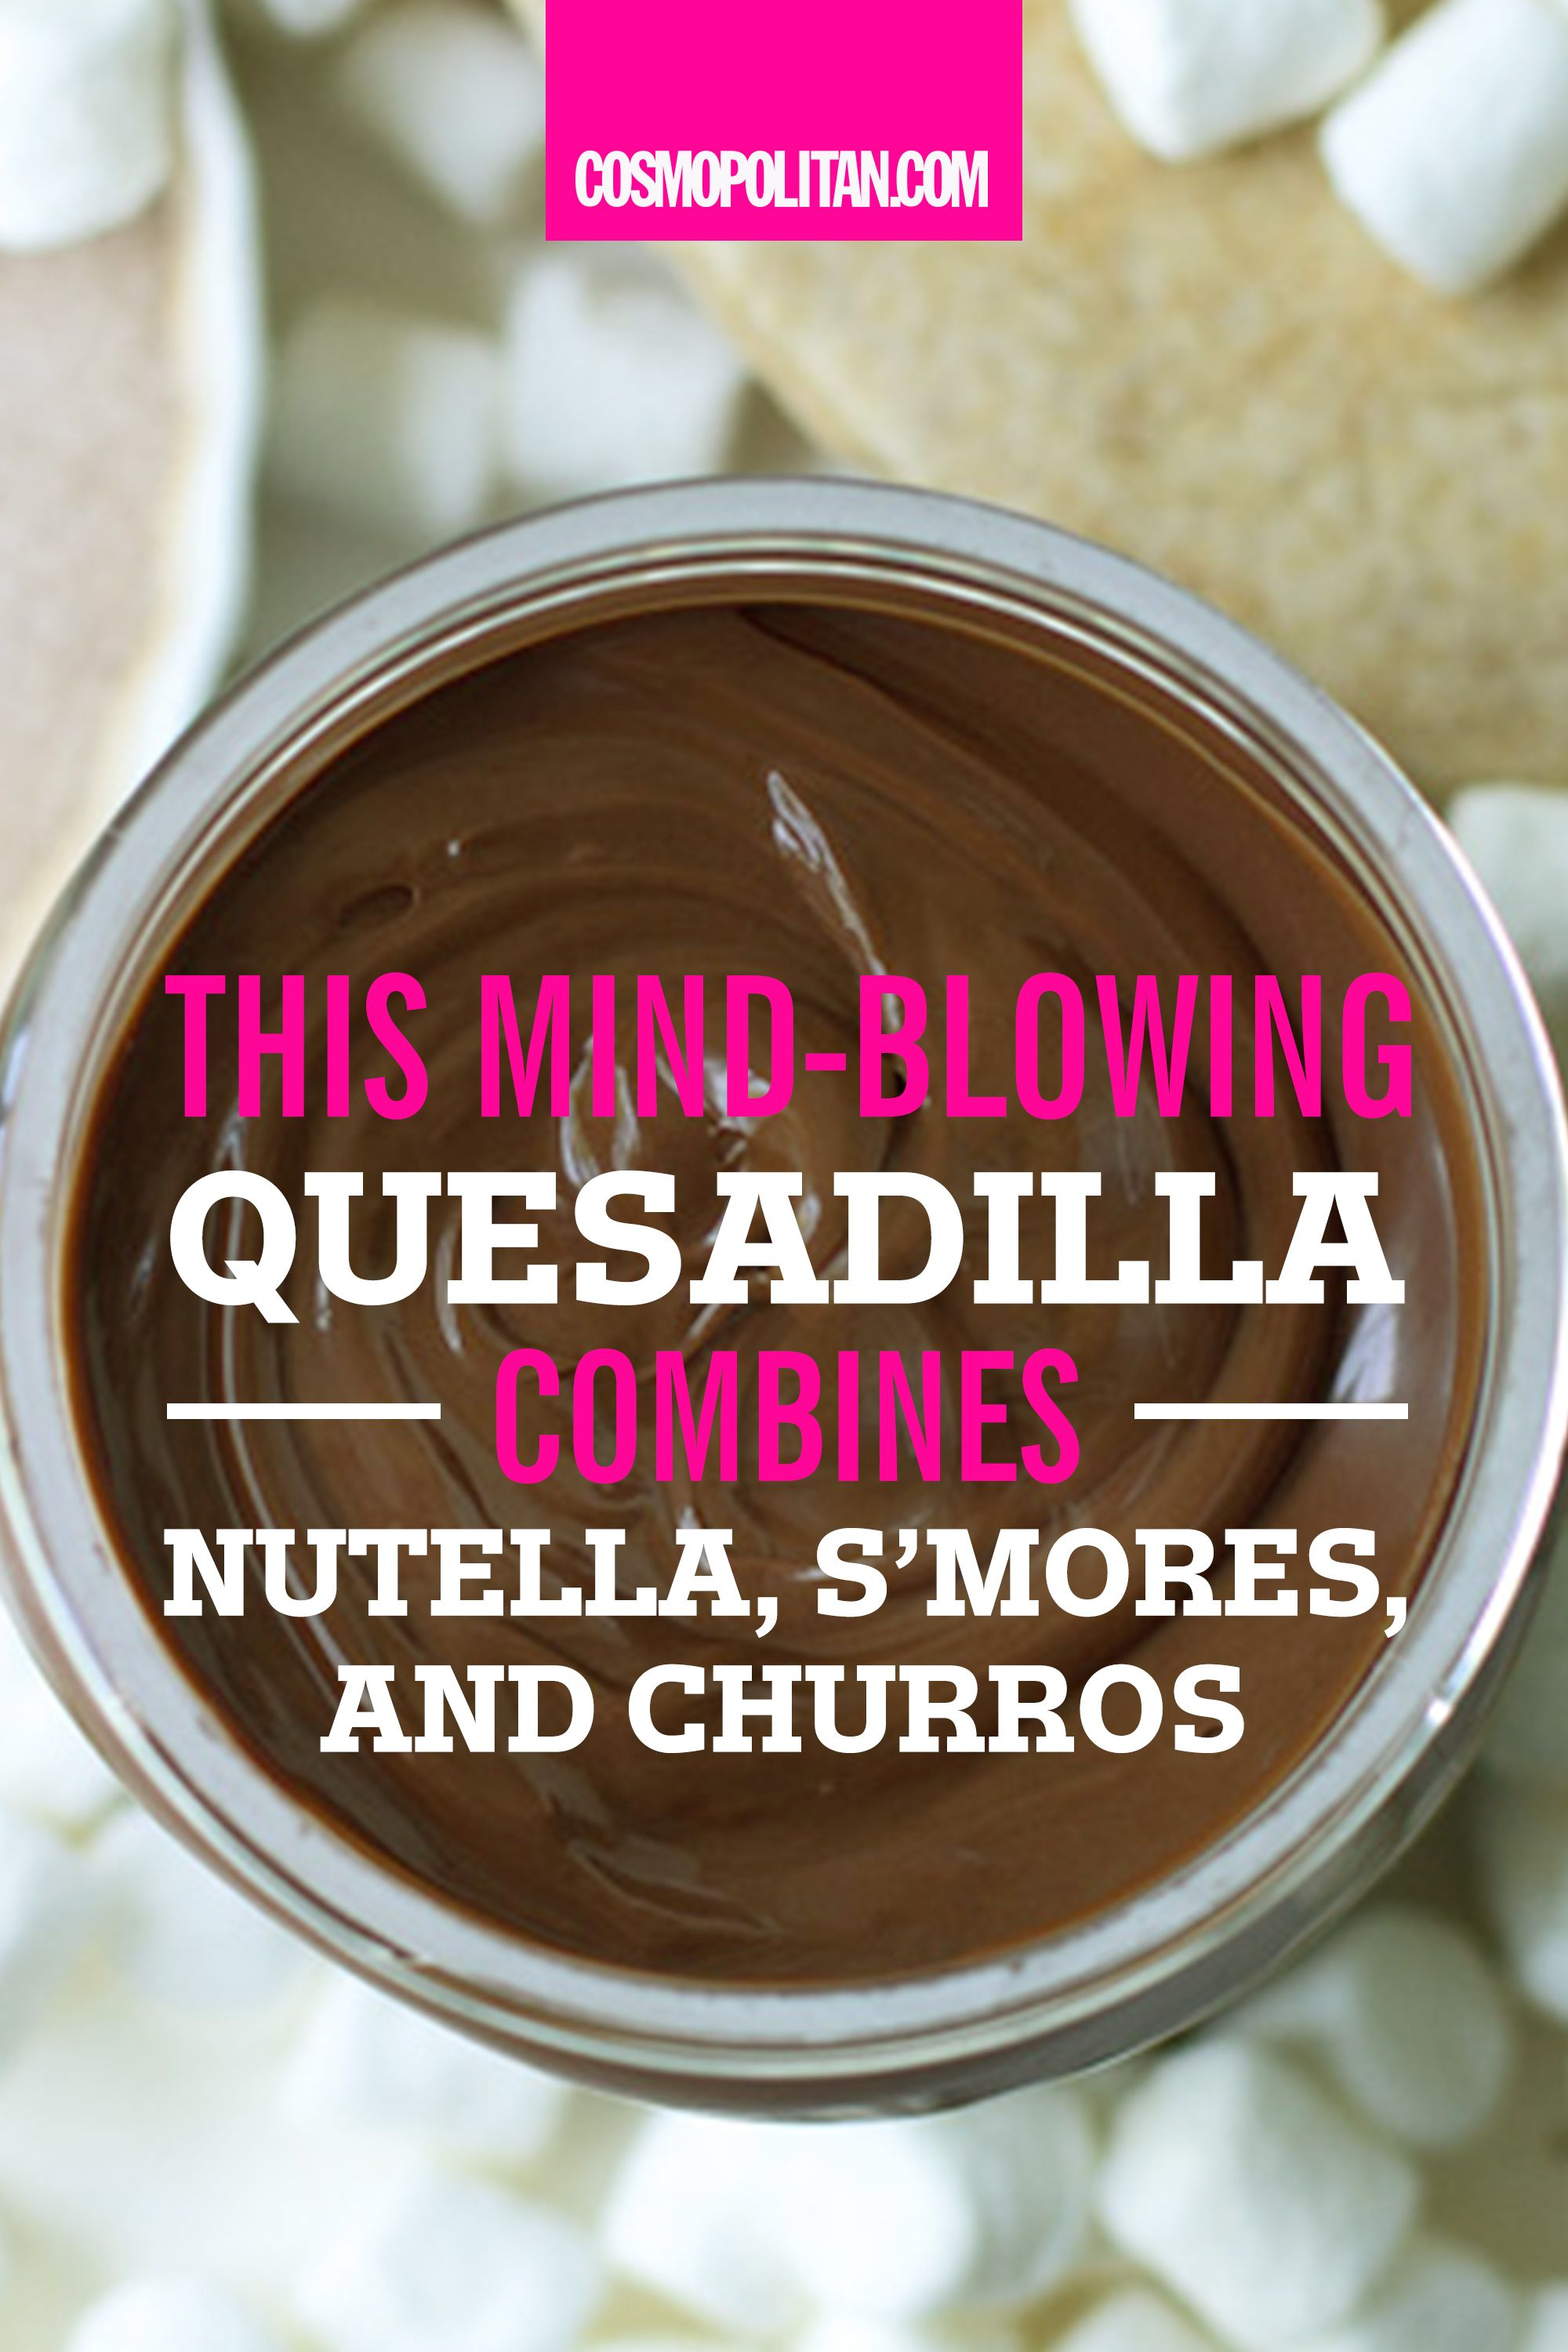 This Mind-Blowing Quesadilla Combines Nutella, S'mores, and Churros